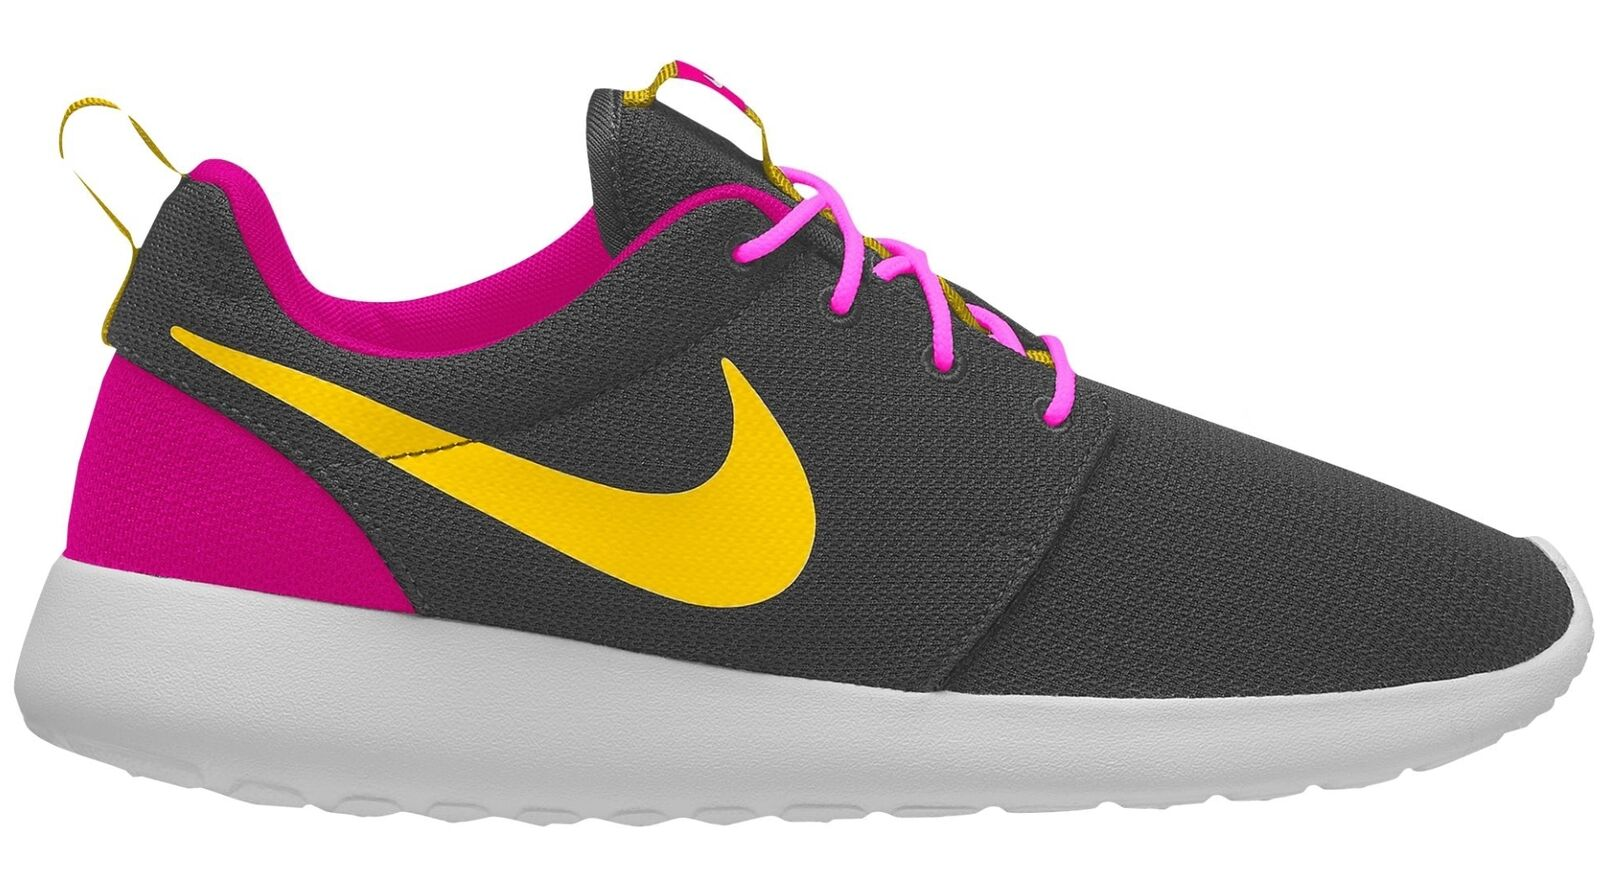 cdd717f16 Nike Roshe One Mens 511881-035 Anthracite Magenta Yellow Running Shoes Size  13